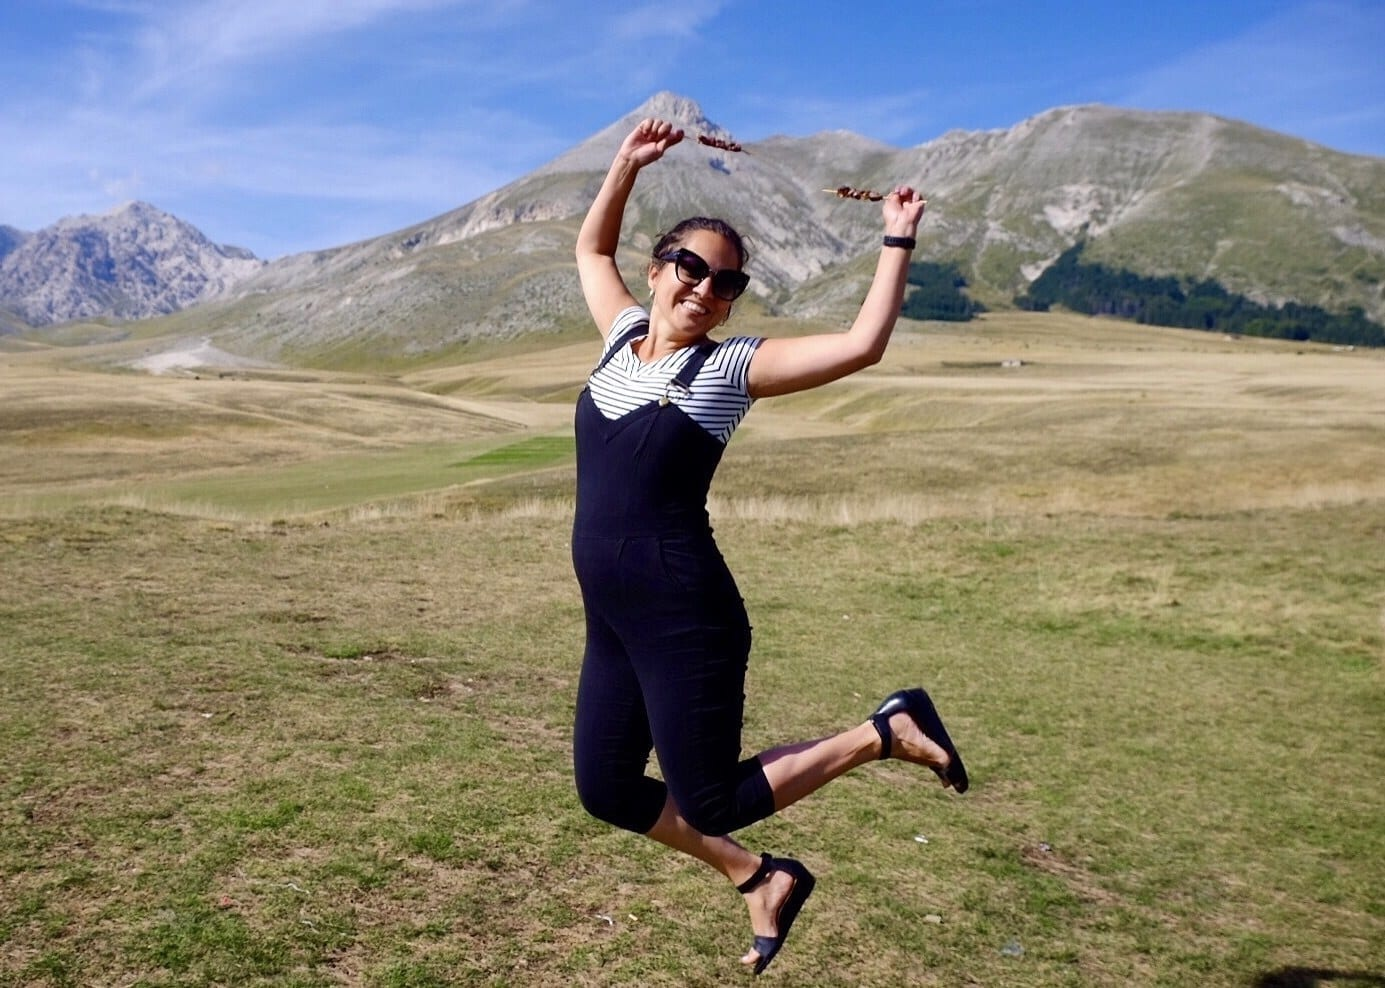 Kate wears overalls and jumps in the air, holding skewers of lamb in each hand, mountains and blue sky behind her, in Gran Sasso National Park.